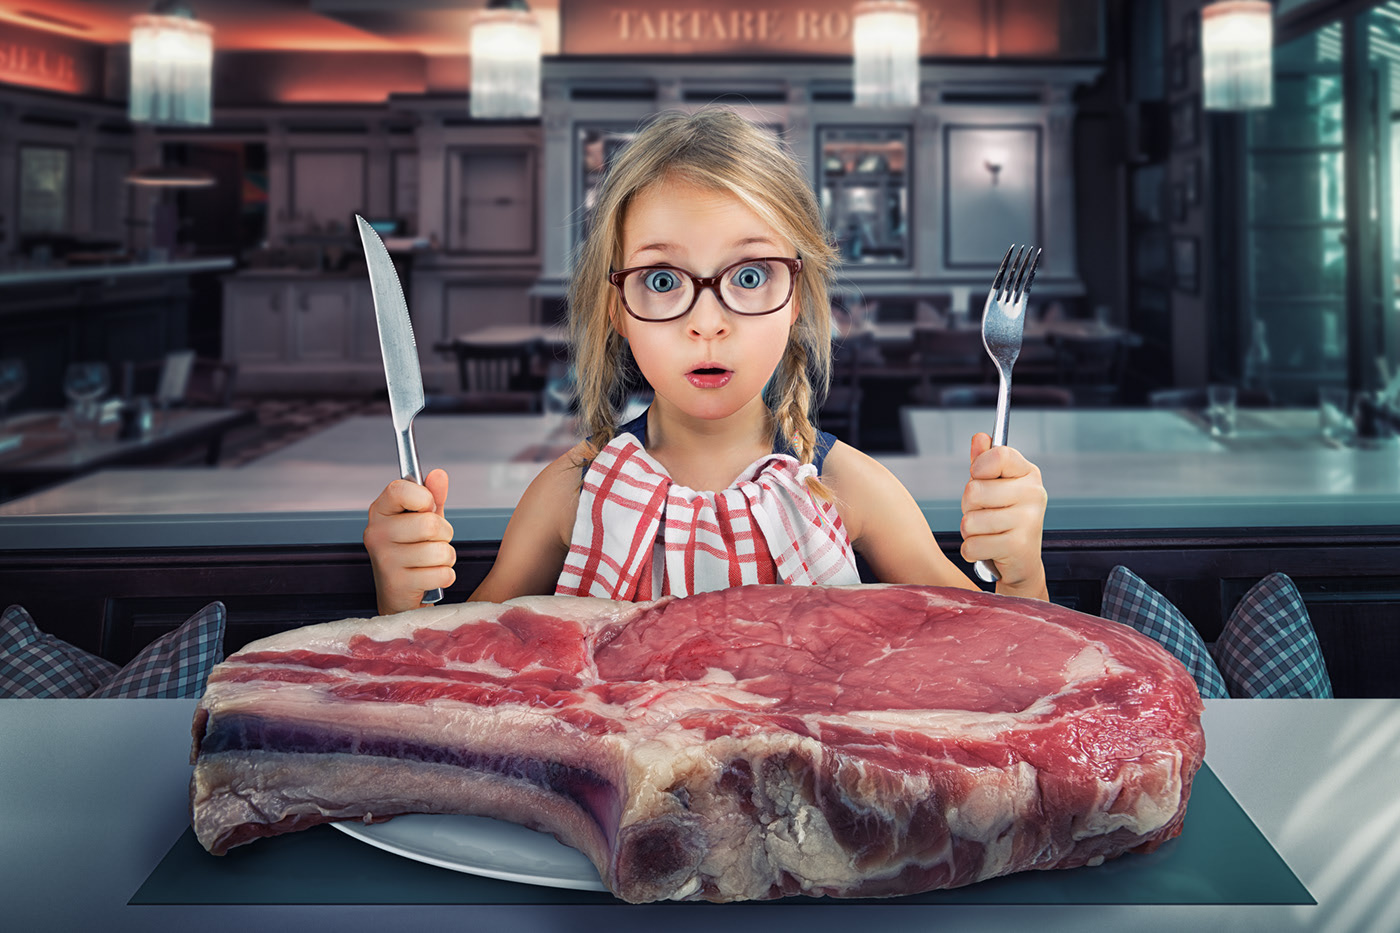 photo manipulation steak